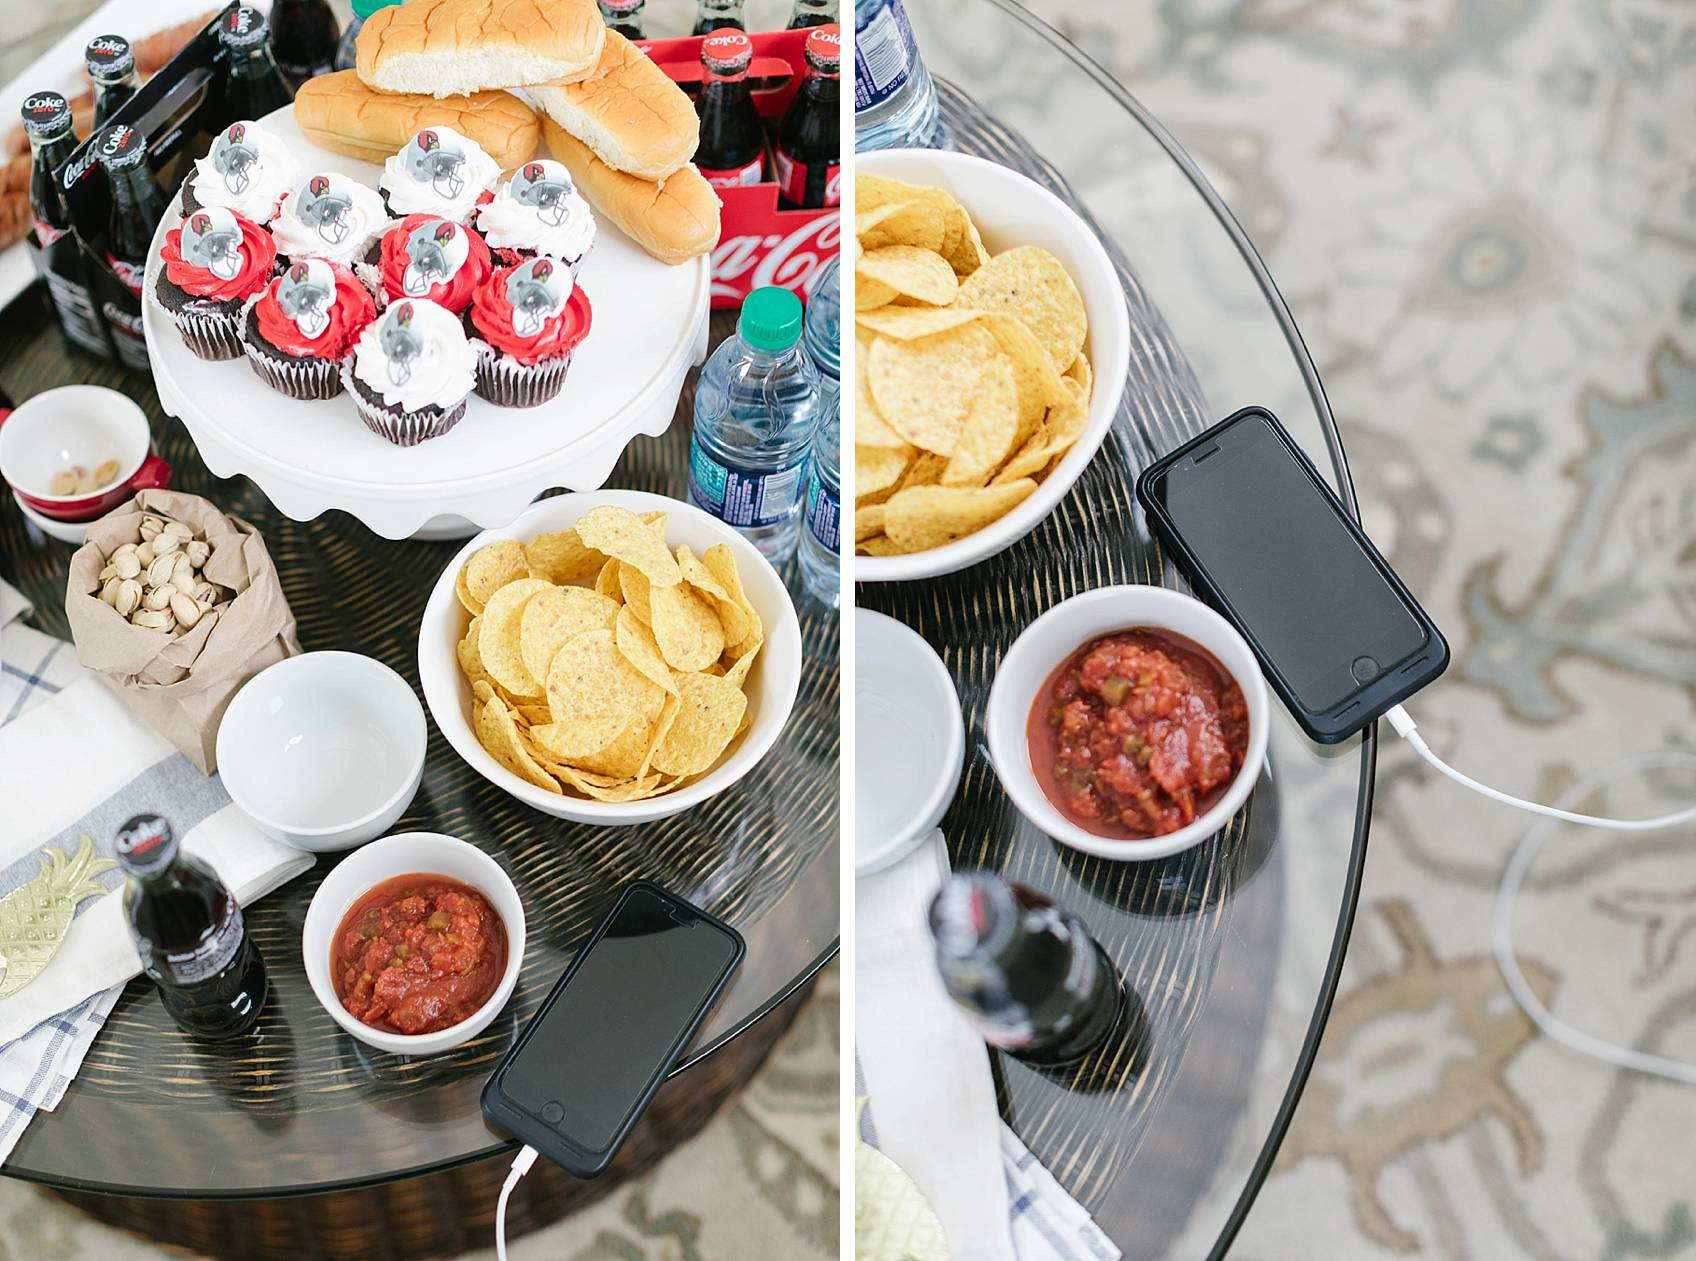 Coke Zero tailgating at home party setup ideas